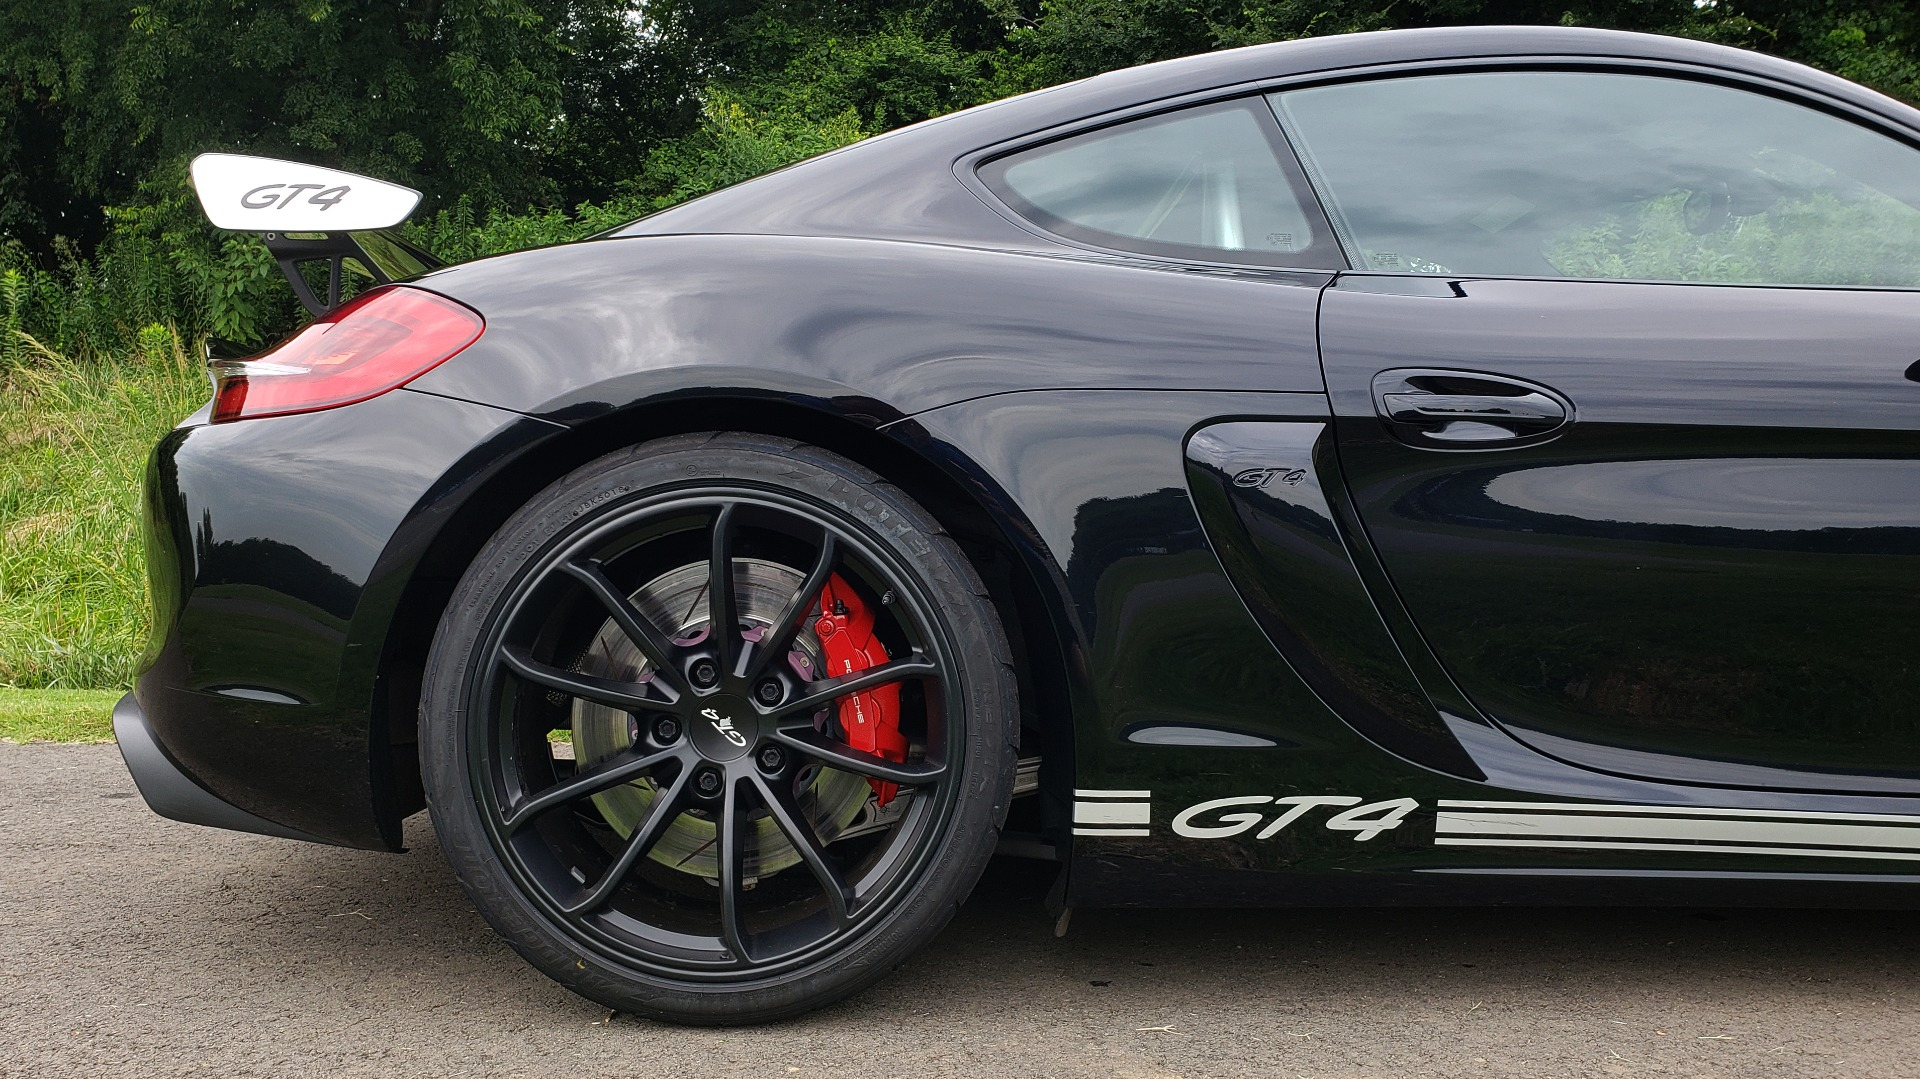 Used 2016 Porsche CAYMAN GT4 / NAV / 6-SPD MANUAL / DUAL-ZONE A/C / SPORT EXHAUST for sale Sold at Formula Imports in Charlotte NC 28227 28